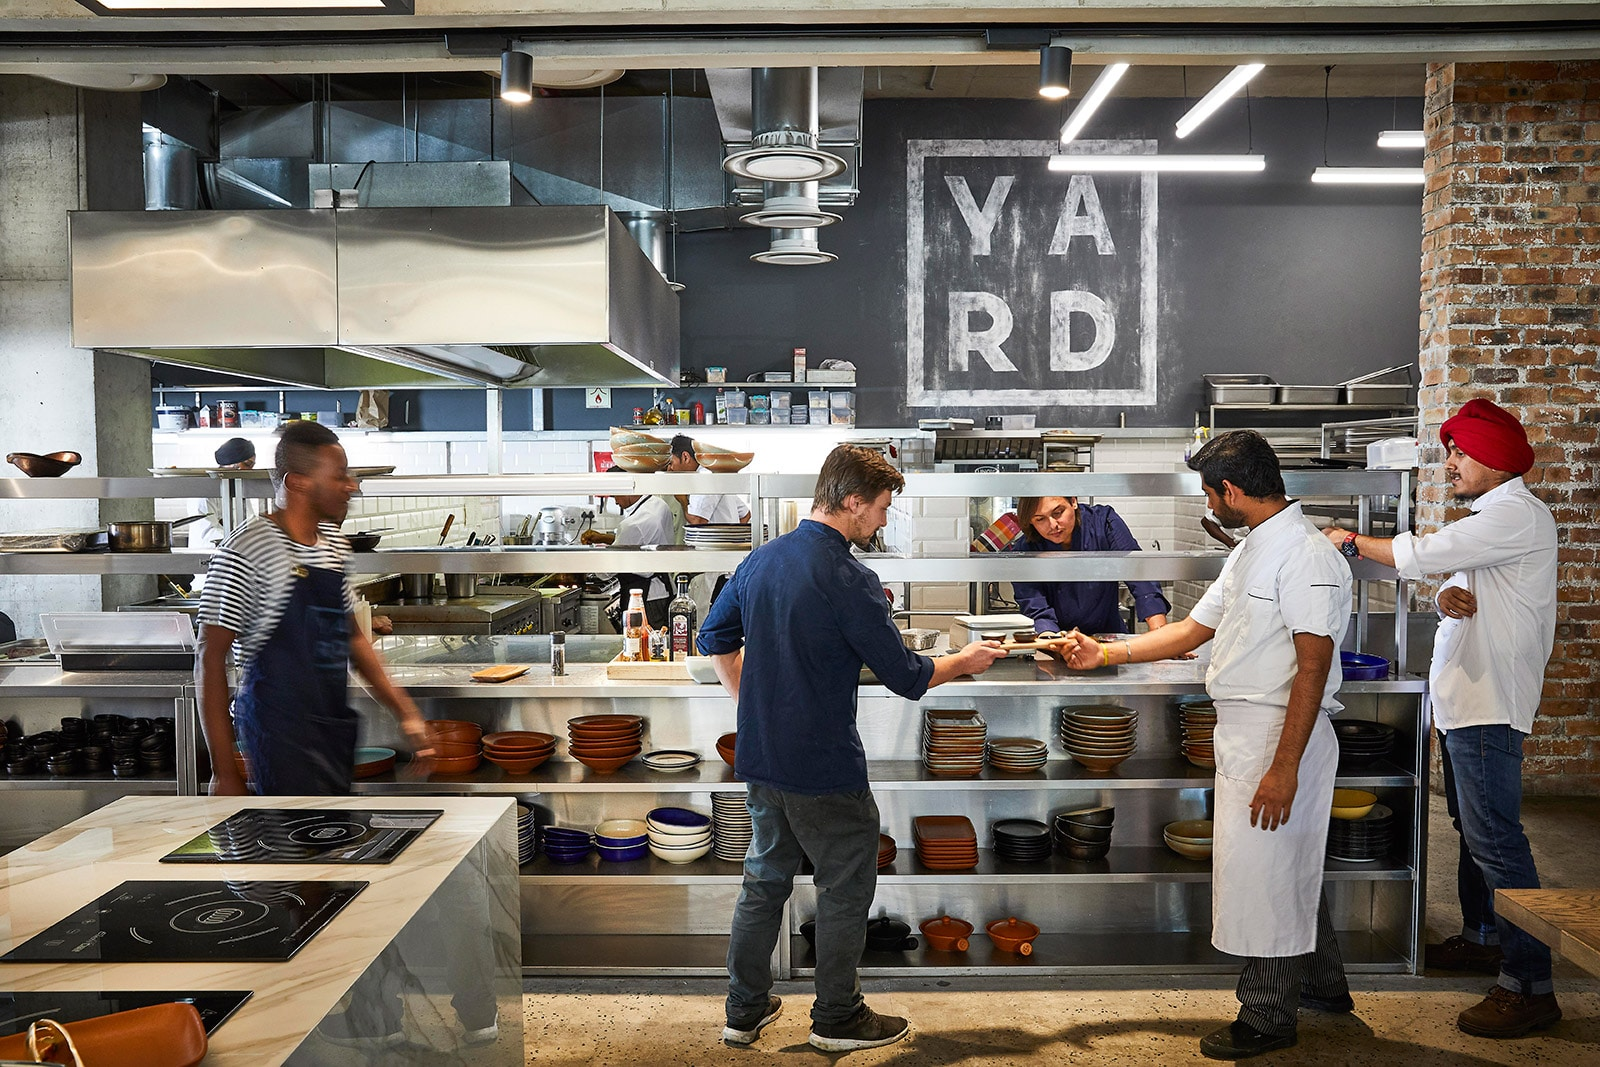 Yard-people-chefs